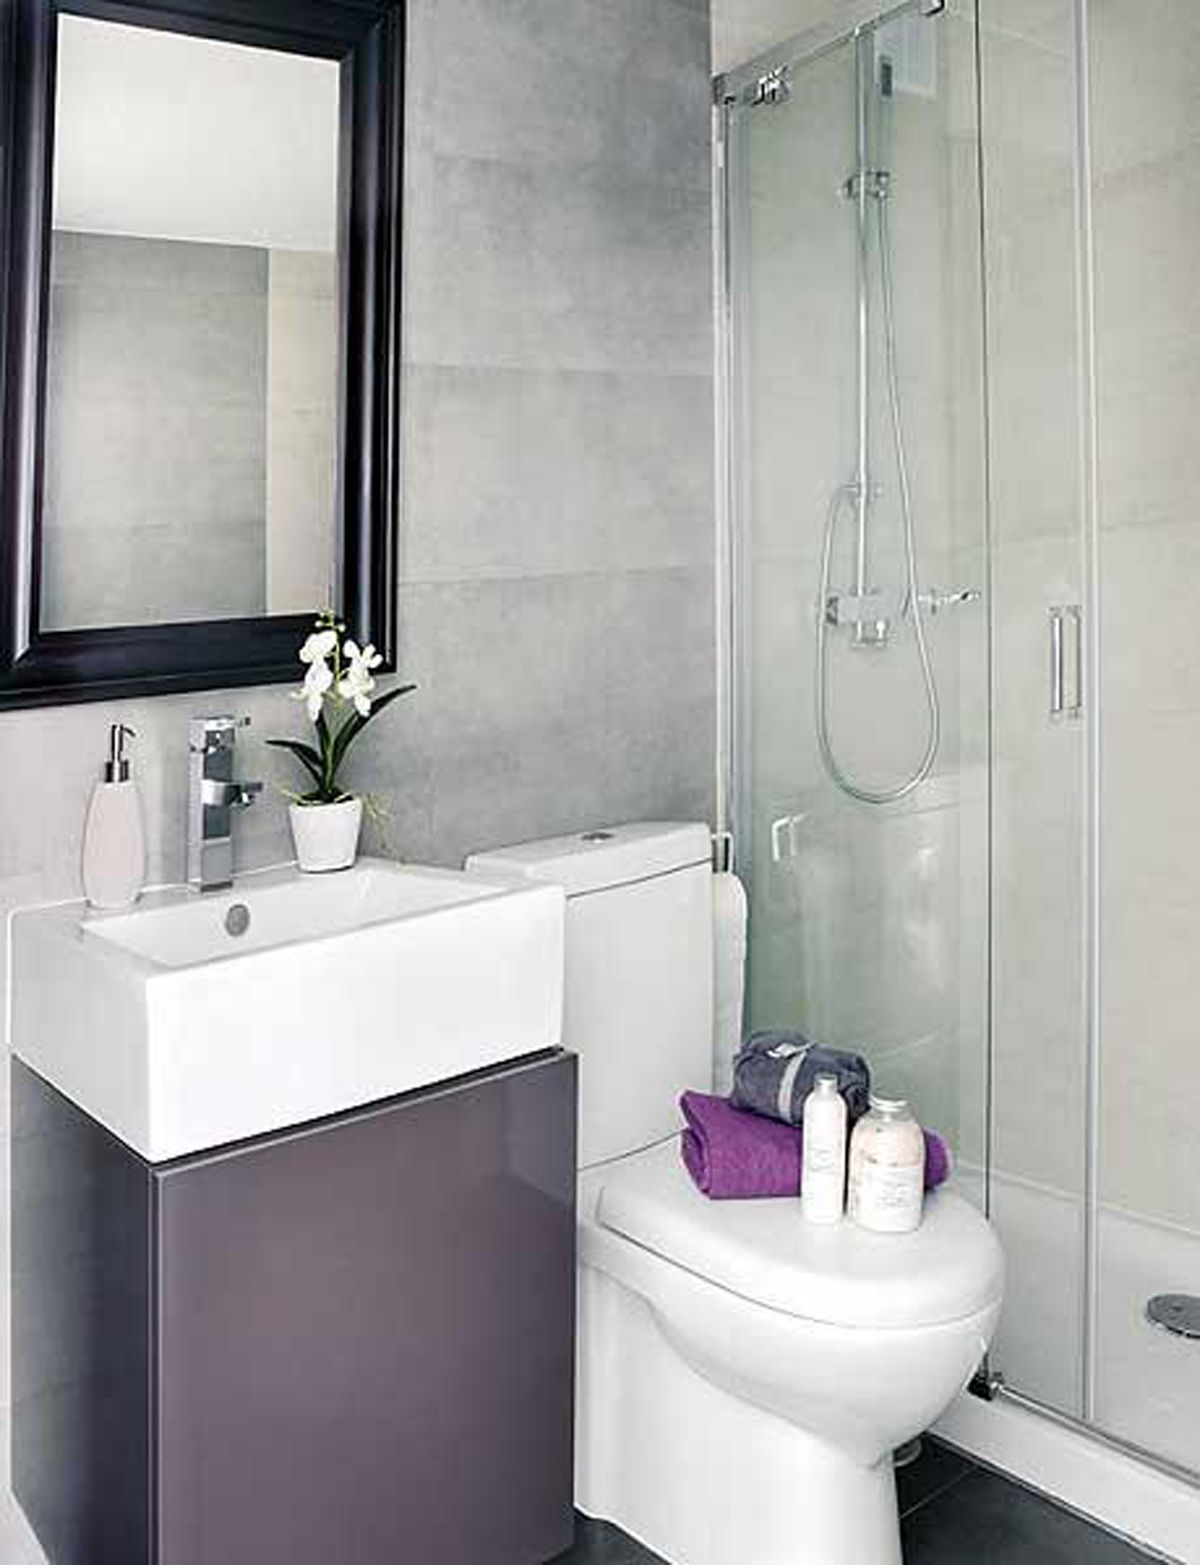 intrinsic interior design applied in small apartment architecture luxticacomluxticacom - Small Bathroom Design Ideas Images